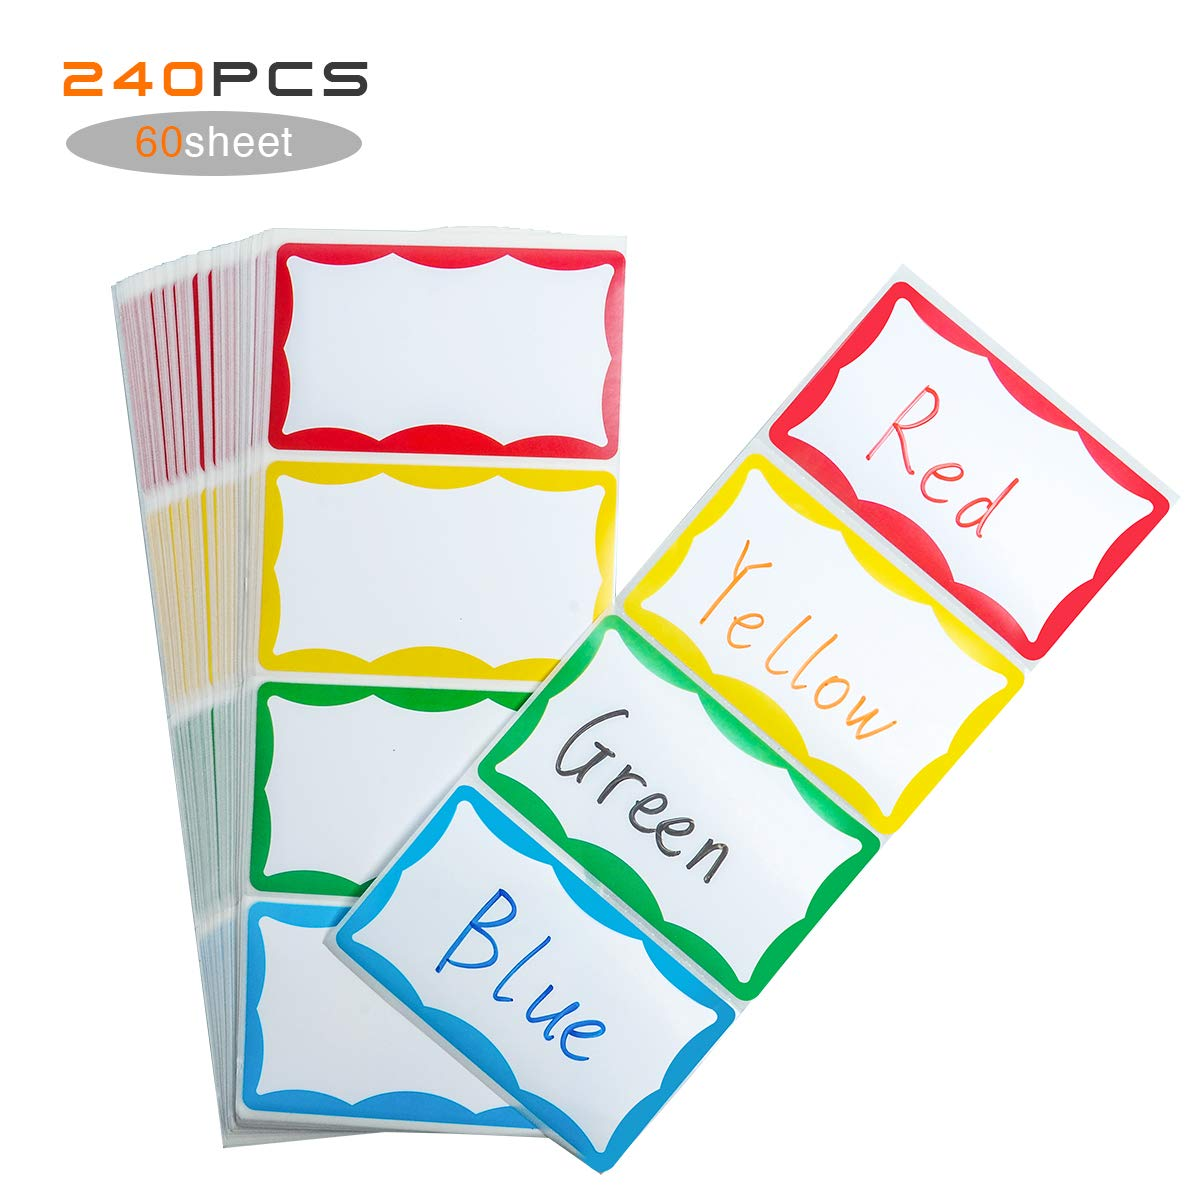 Wiwaplex plain name tag stickercolorful border name tag labels self adhesive name badge labels for office school home 240pcs